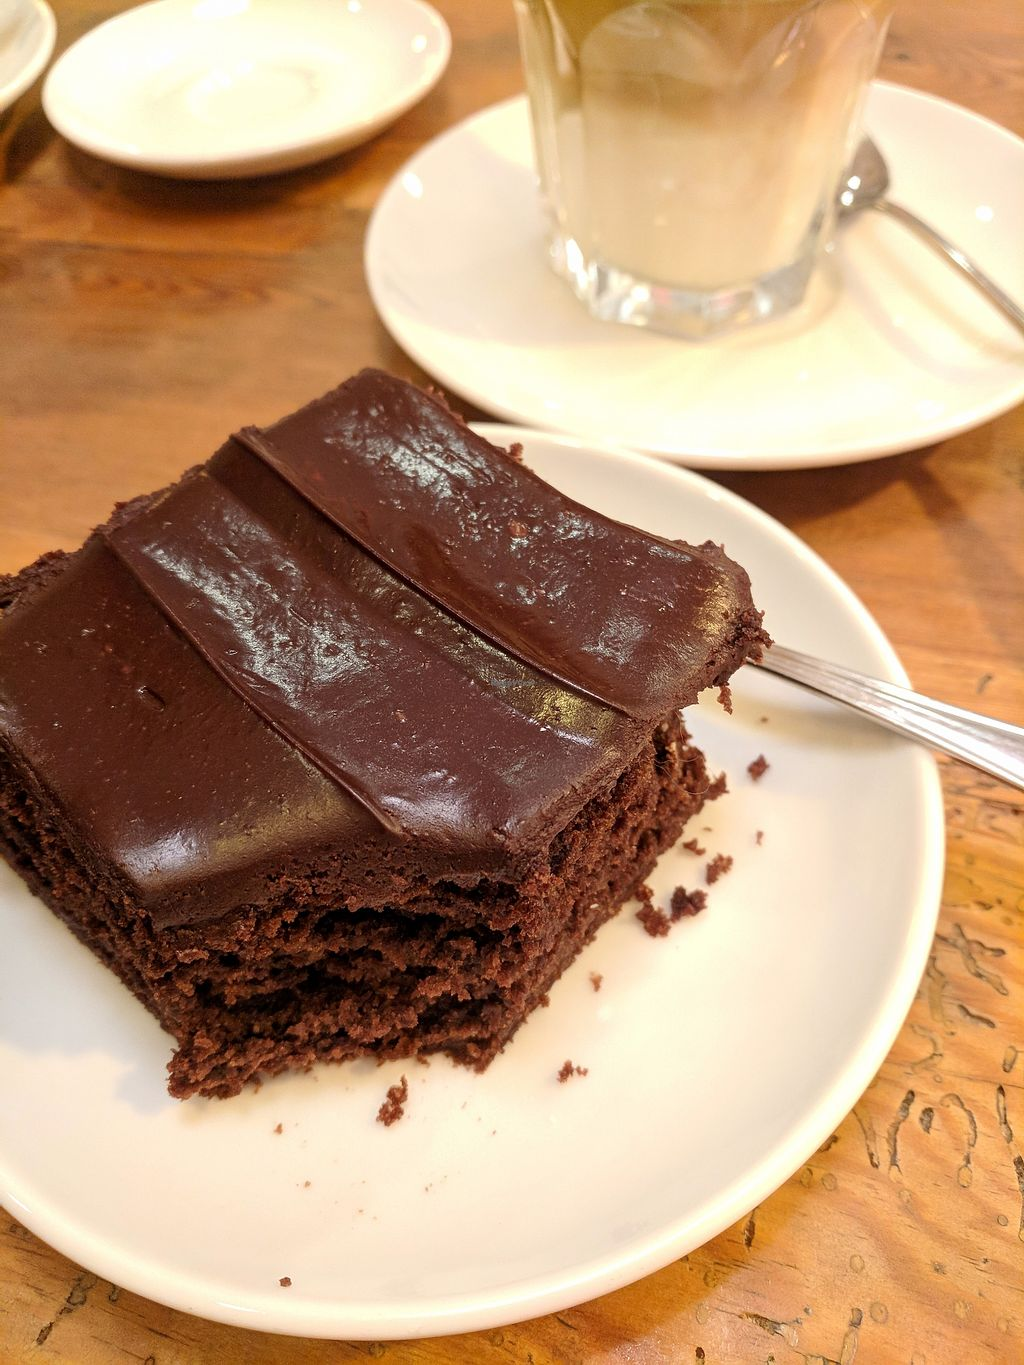 "Photo of Katjes Cafe Grün-Ohr  by <a href=""/members/profile/Pupnik"">Pupnik</a> <br/>Avocado chocolate cake <br/> November 16, 2017  - <a href='/contact/abuse/image/75531/326306'>Report</a>"